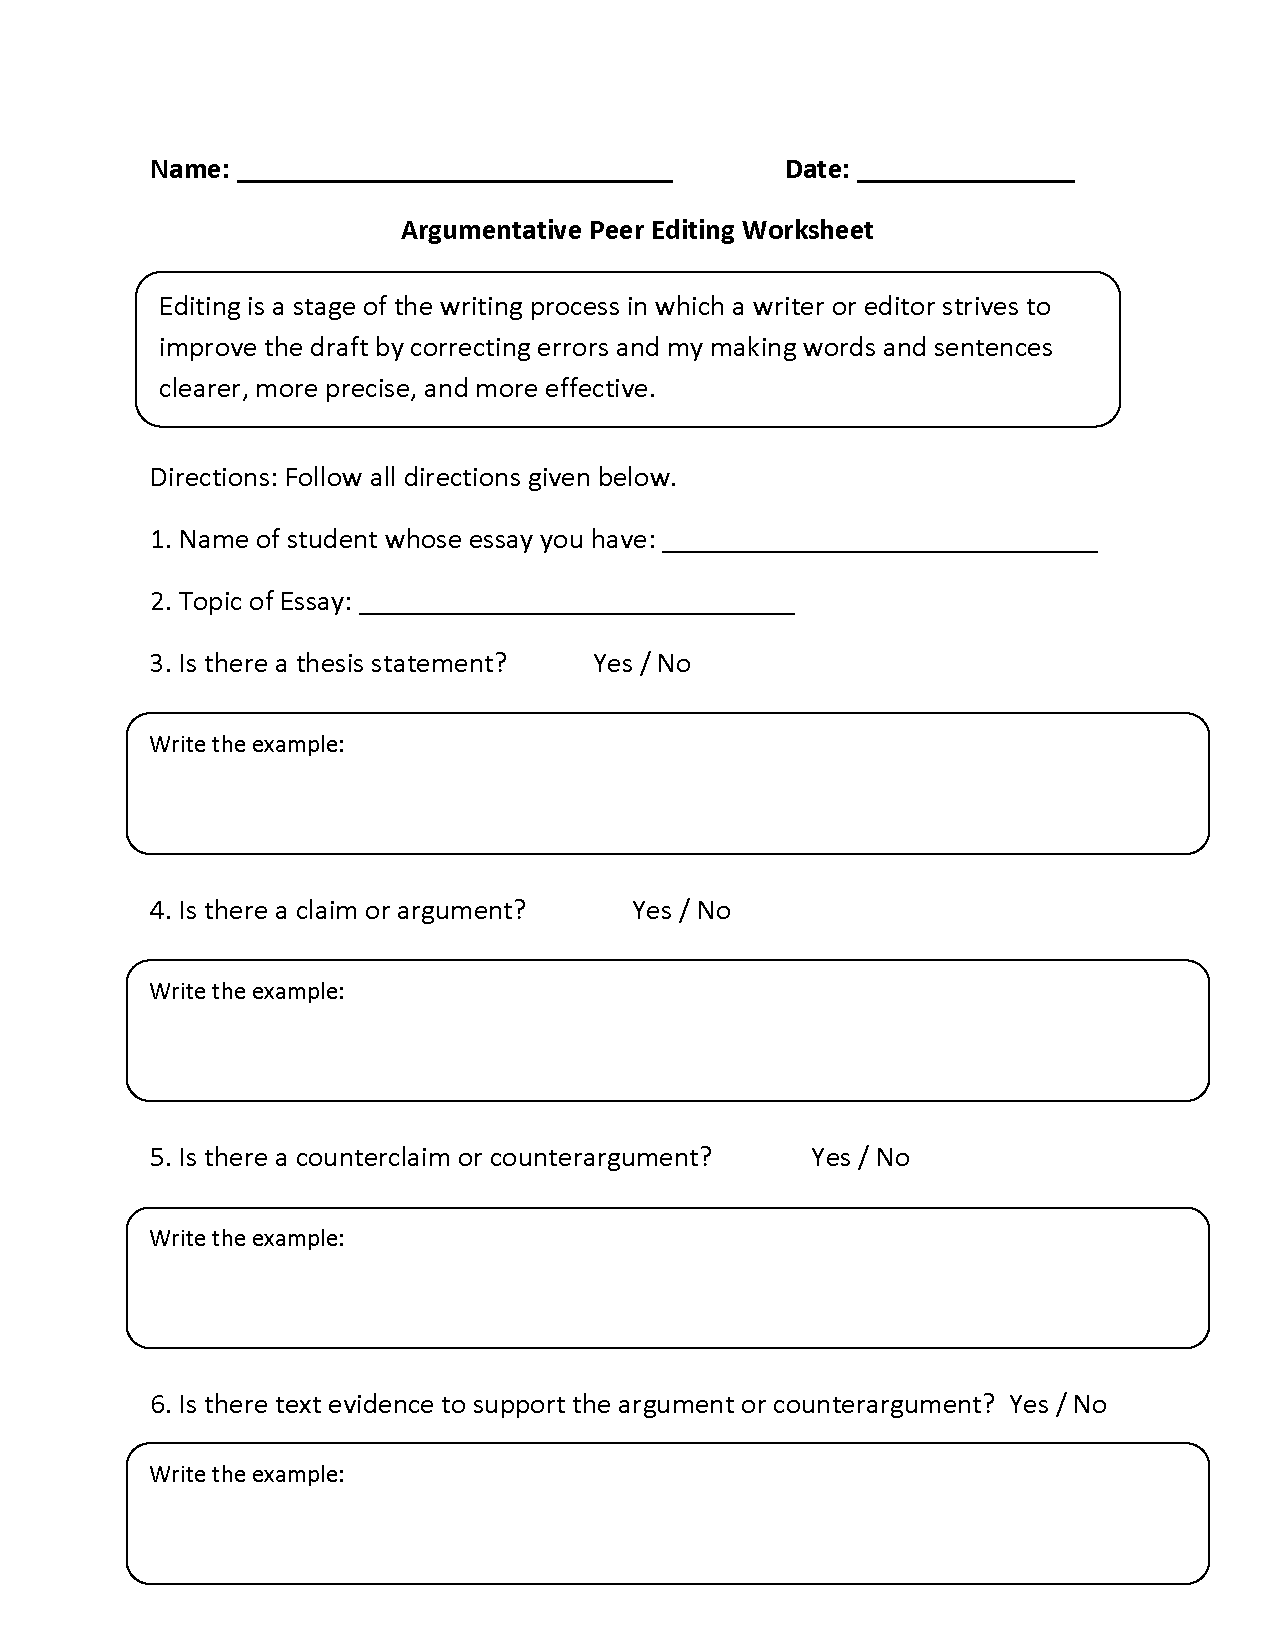 worksheet Editing Practice Worksheets writing worksheets editing peer worksheets